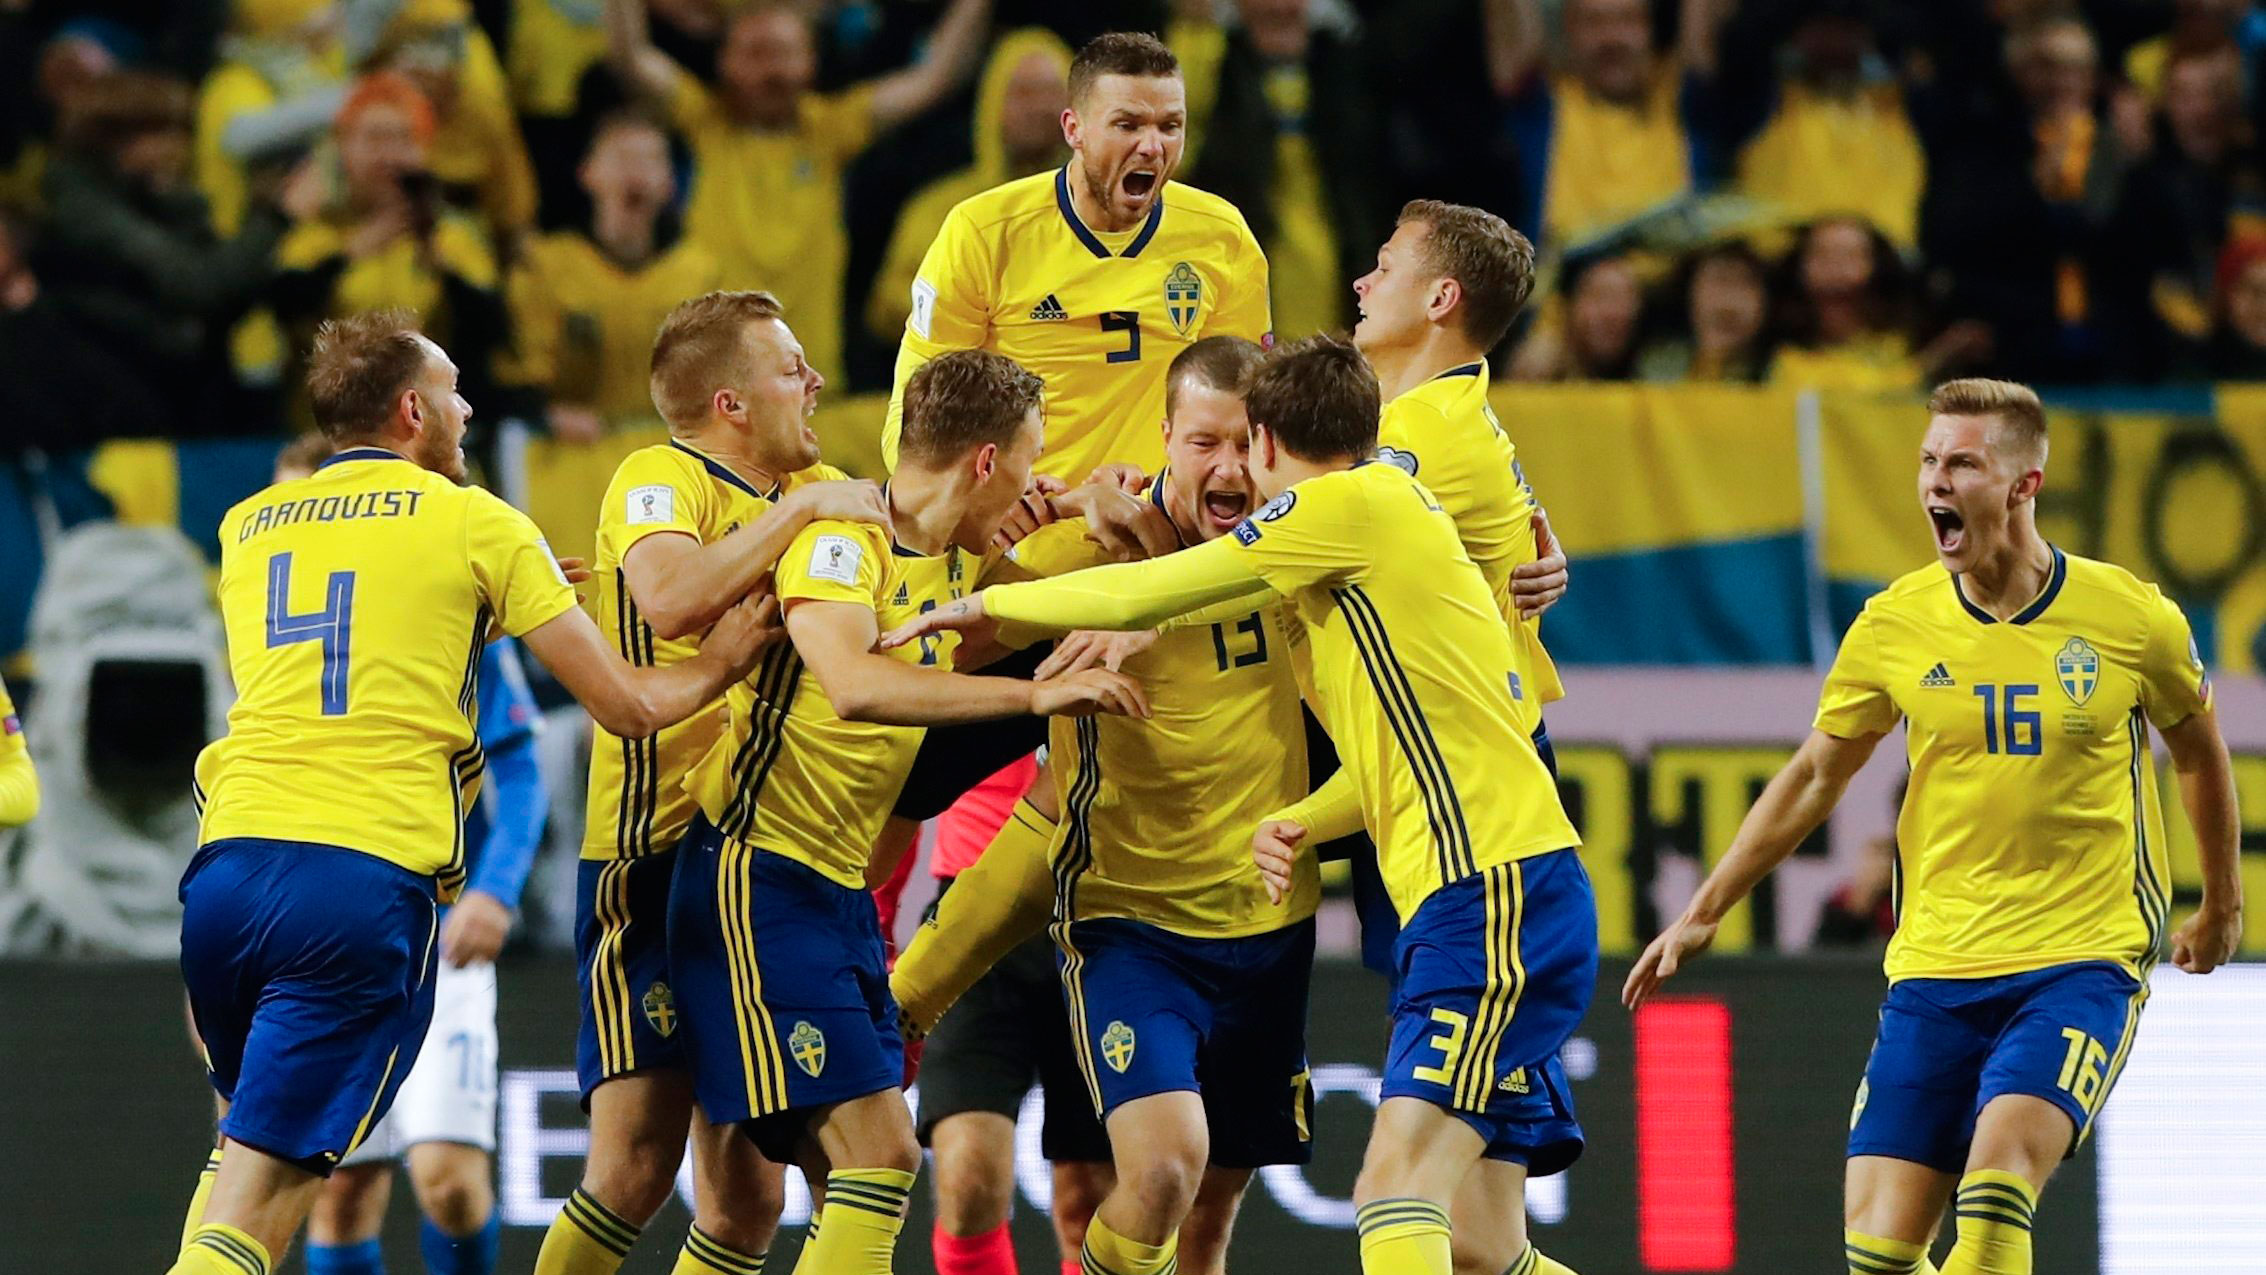 Sweden's playoff match winner misses World Cup with injury